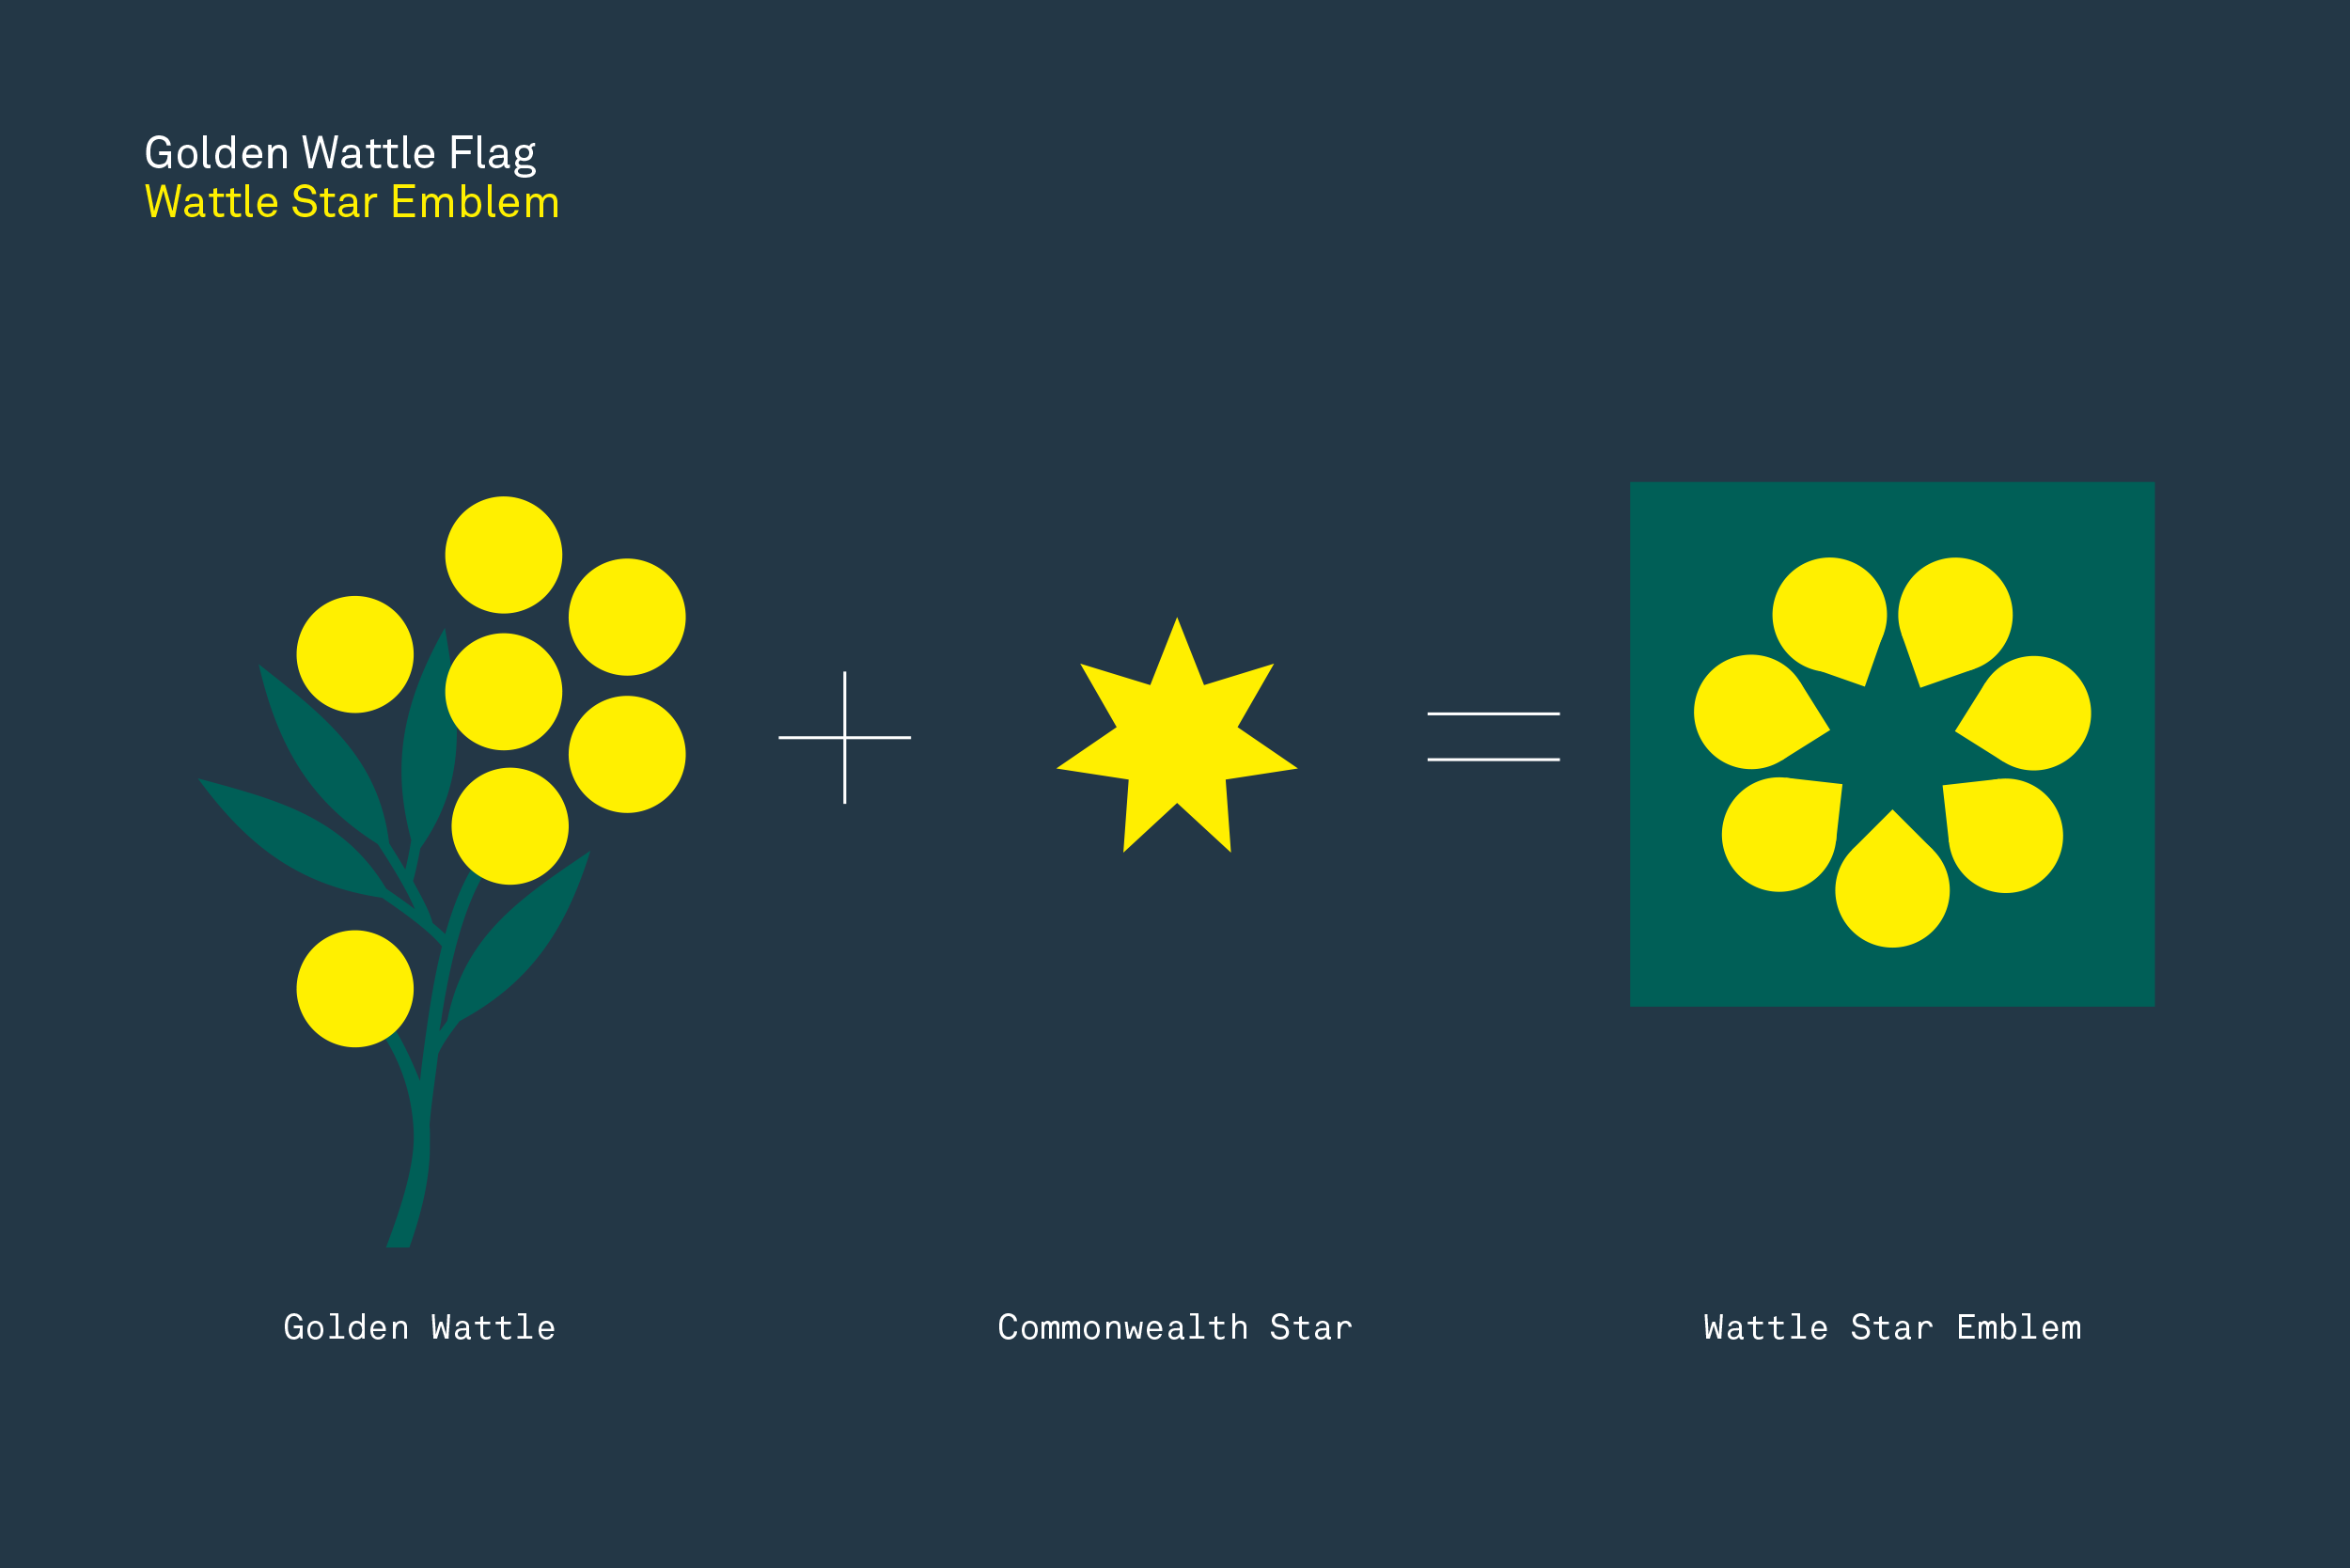 © 2019 The Golden Wattle Flag. All Rights Reserved. Please acknowledge 'The Golden Wattle Flag' when designs are published in the media and posted online.